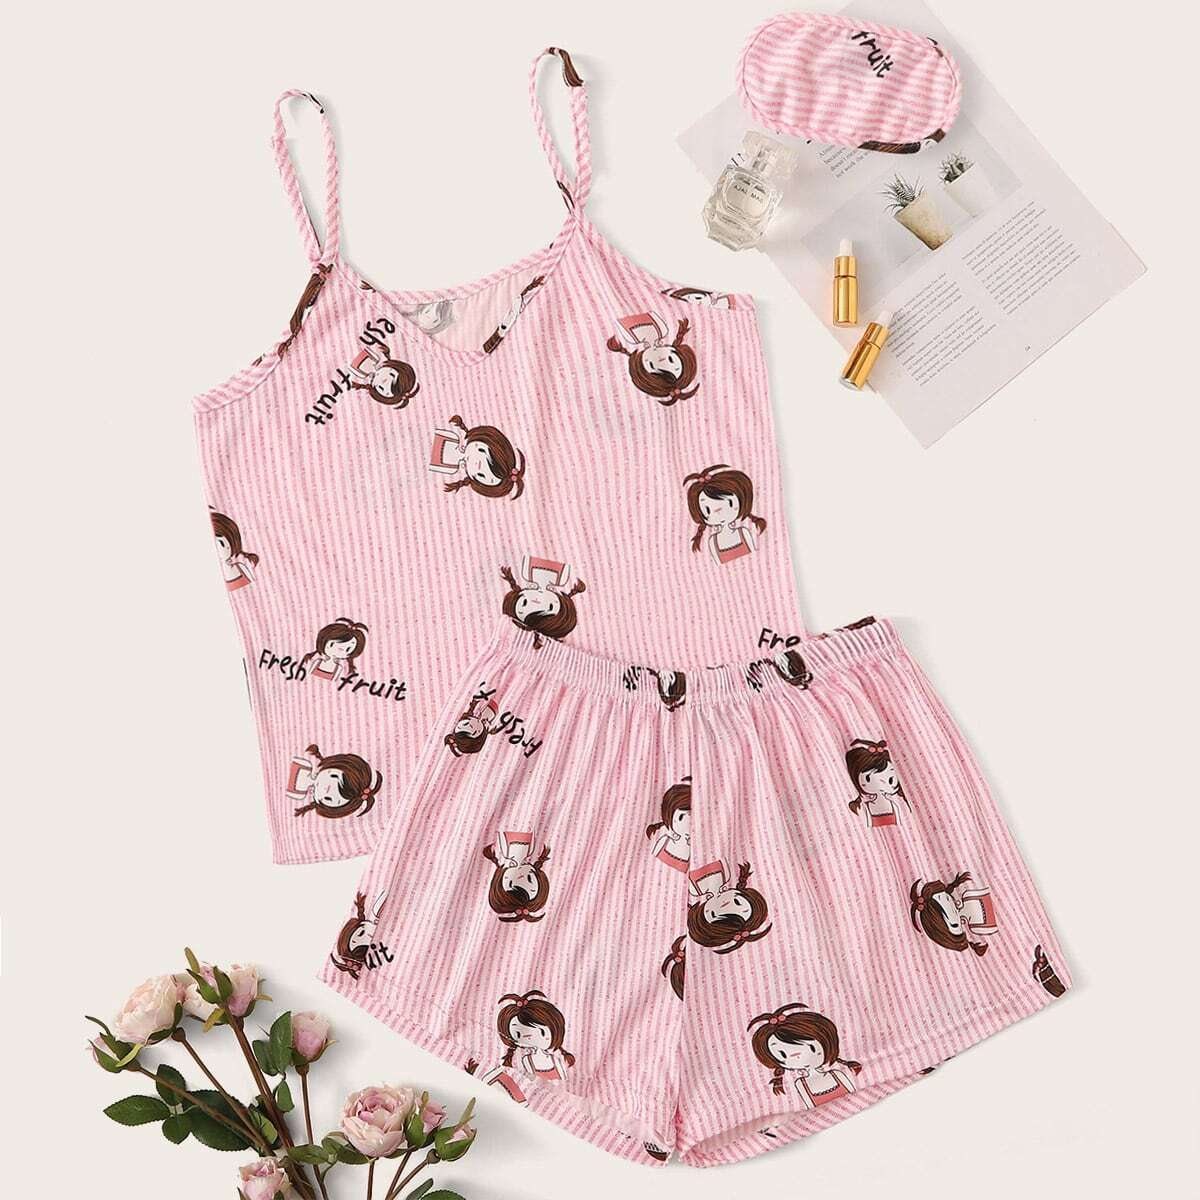 Cartoon Graphic Cami PJ Set With Eye Cover, SHEIN  - buy with discount